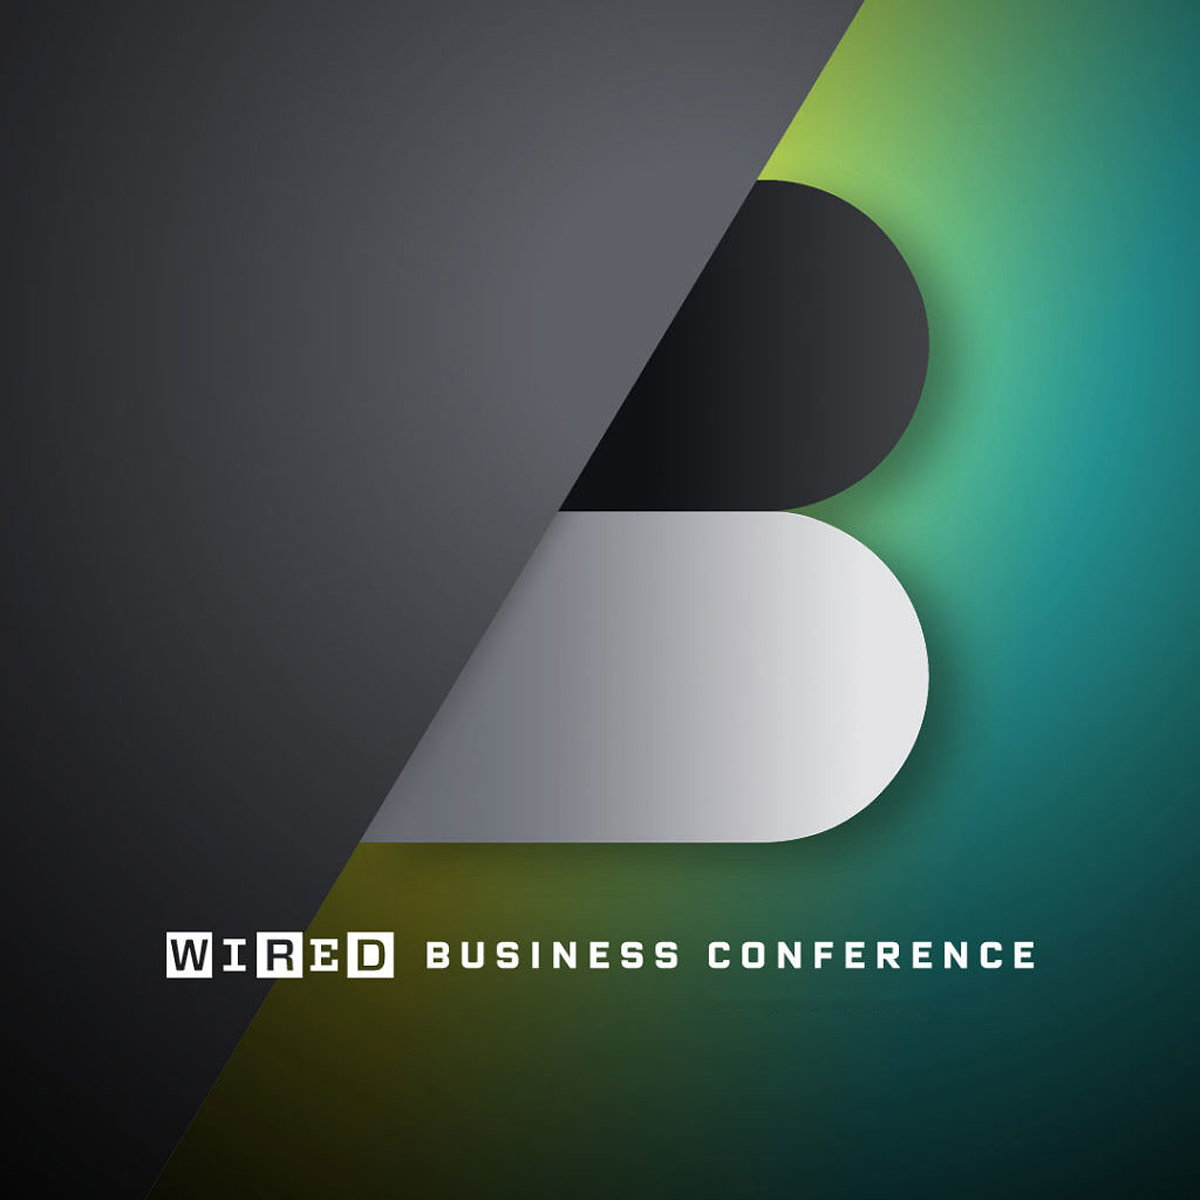 2017 WIRED Business Conference